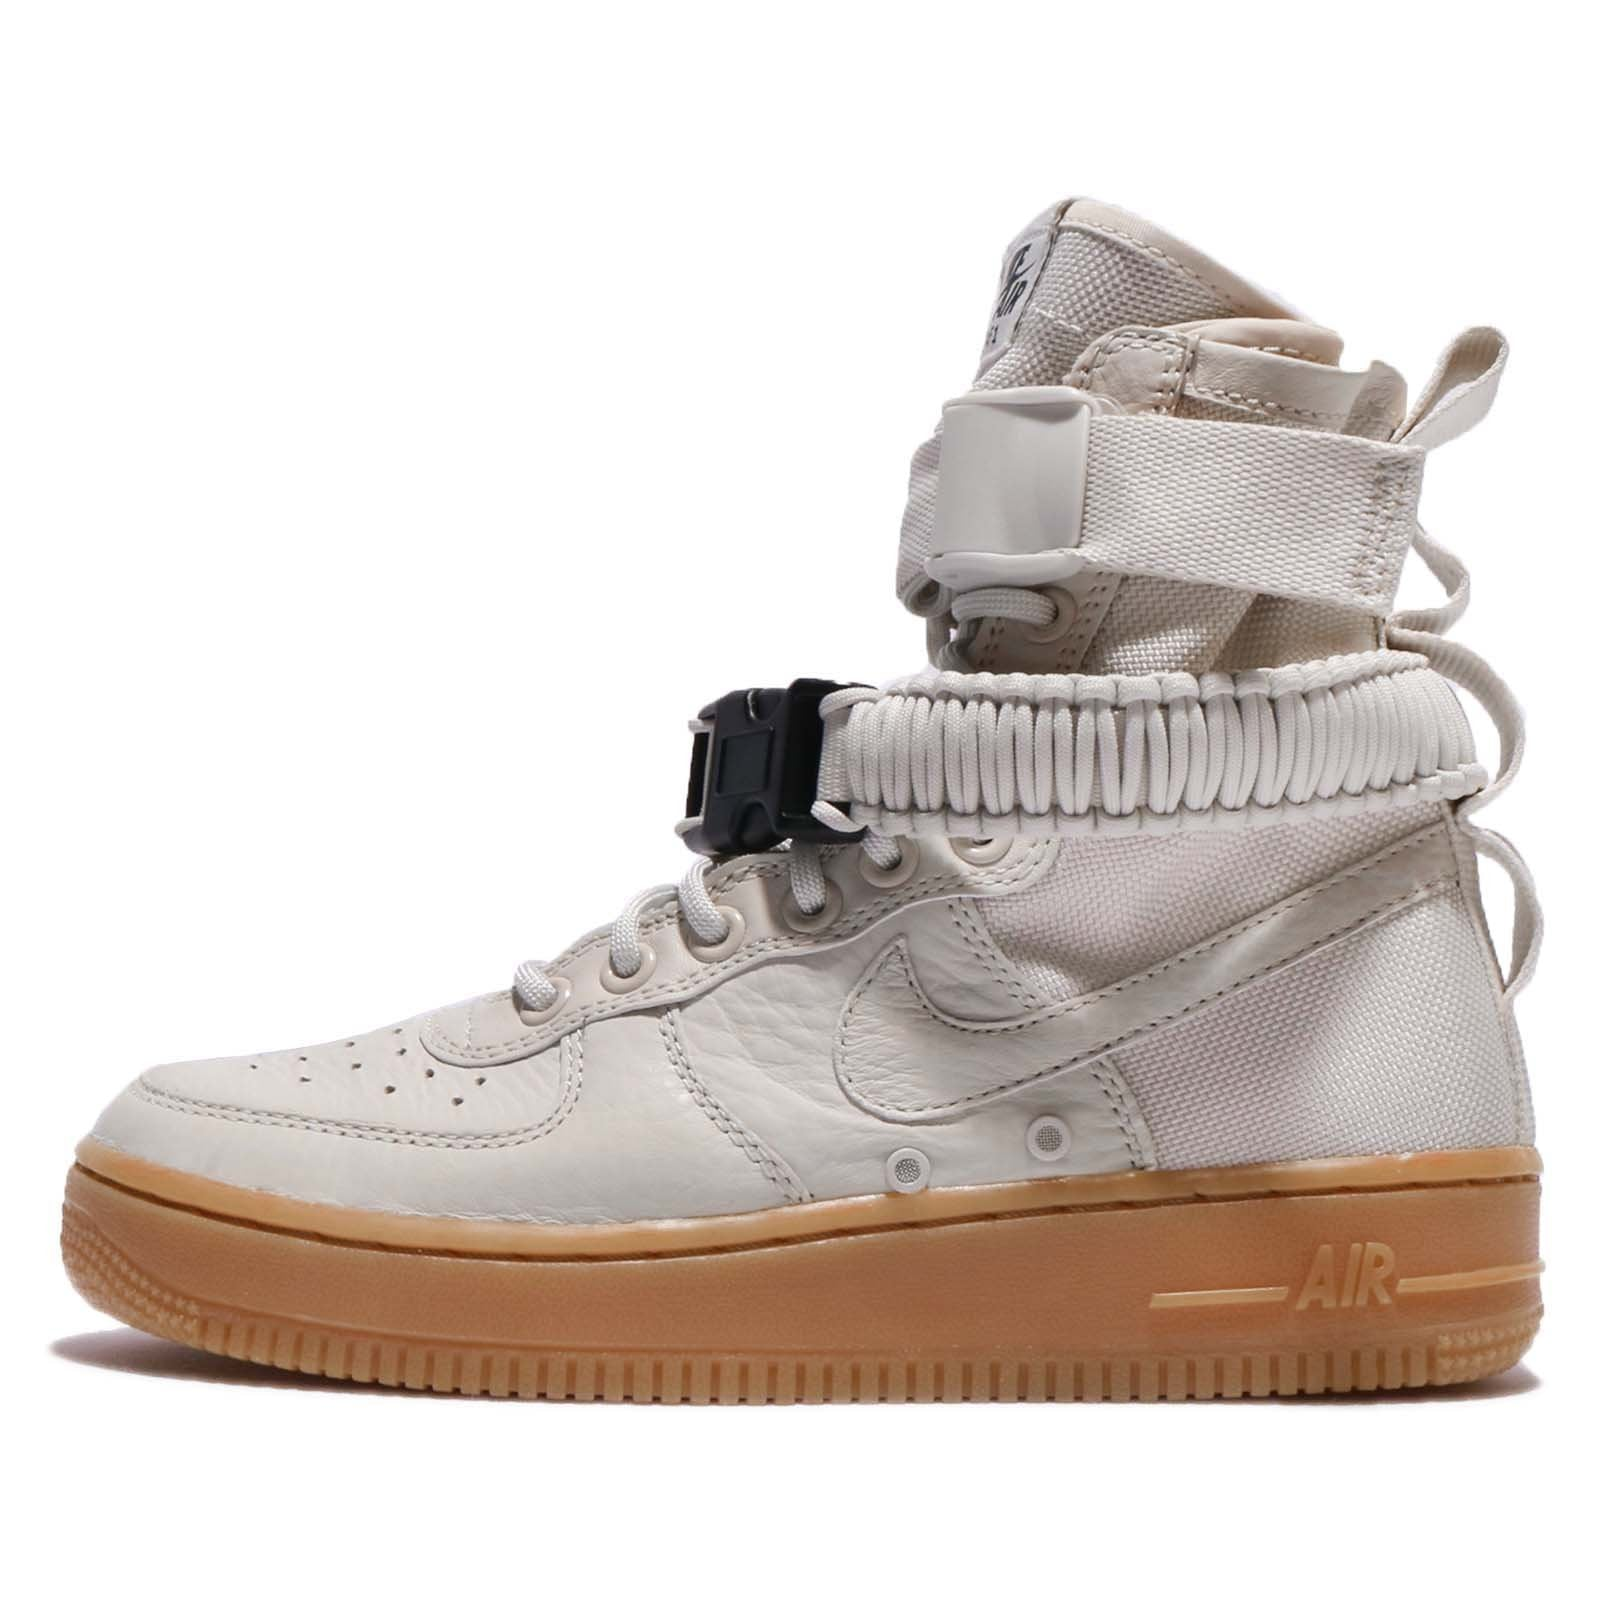 Nike SF Air Force 1 Womens Shoes Light Bone/Light Bone